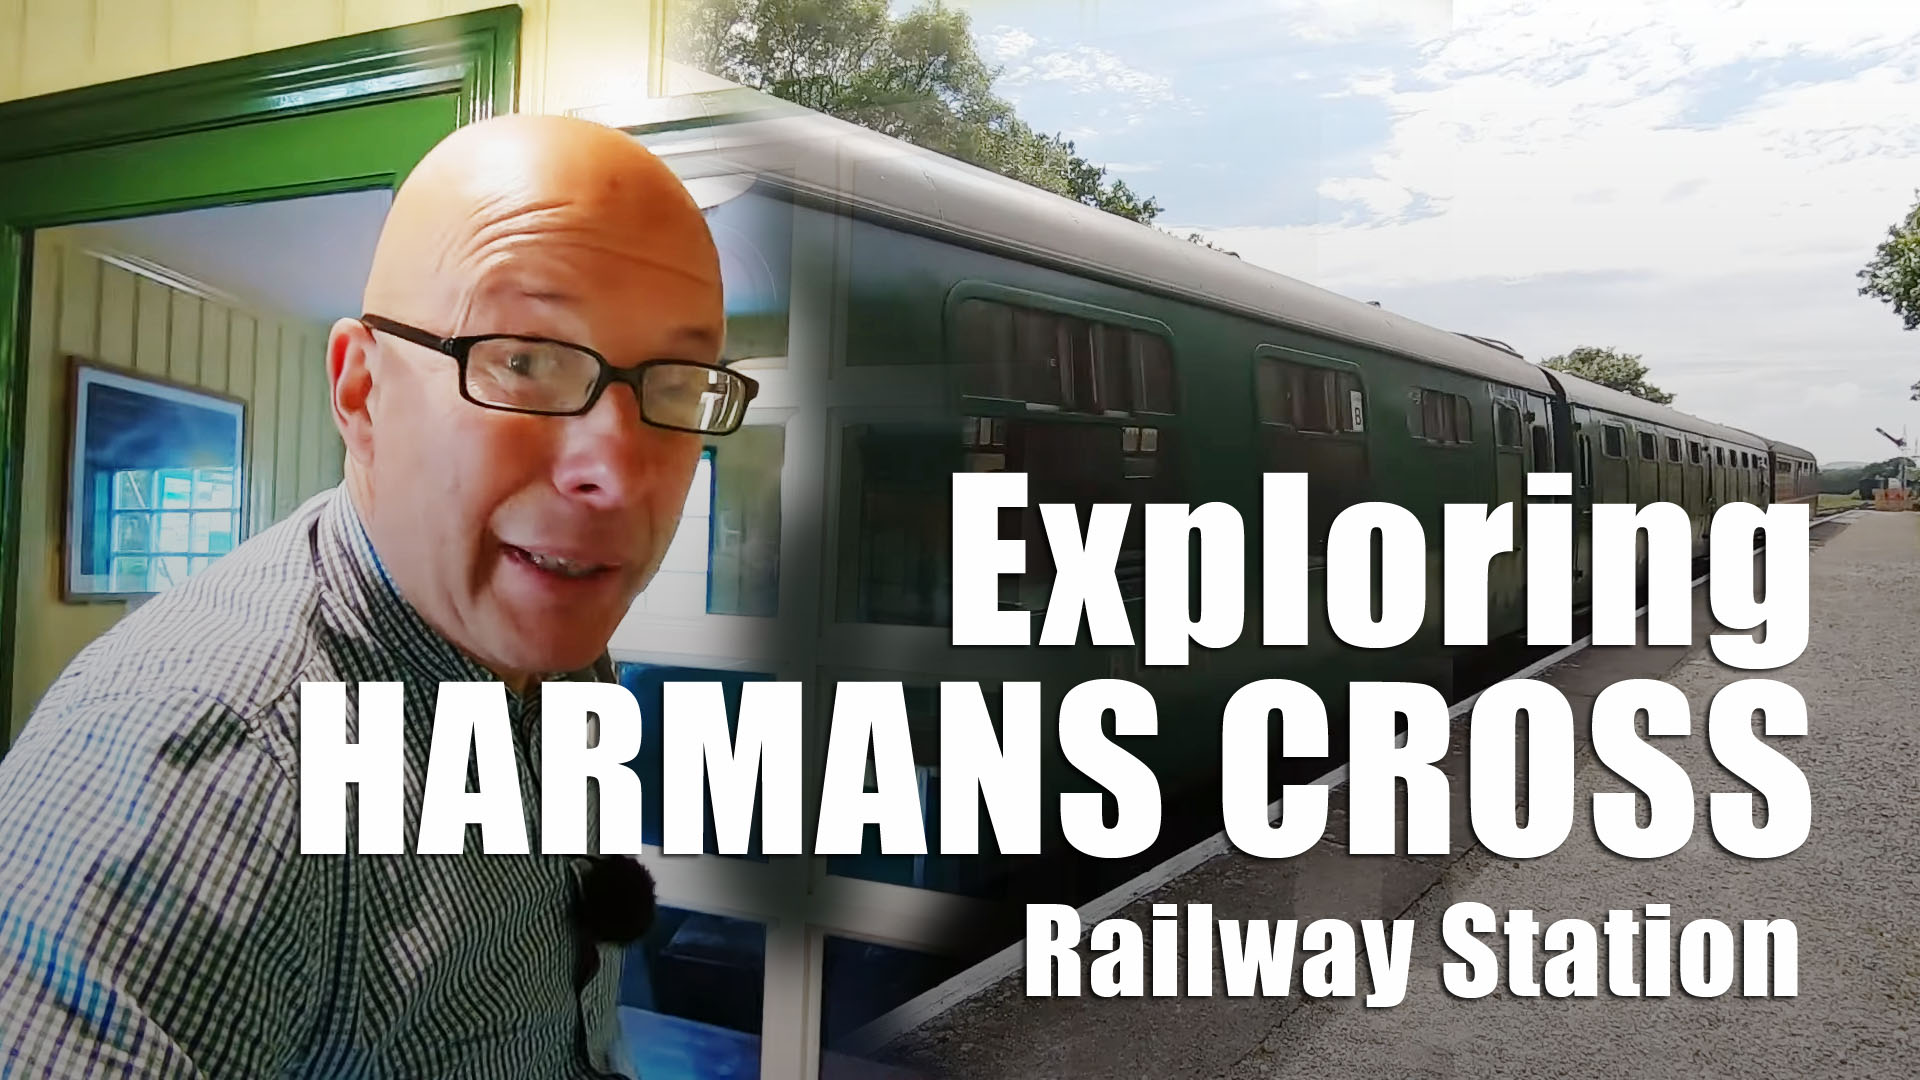 Dorset's Jurassic Coast - Harman's Cross Railway Station Visit